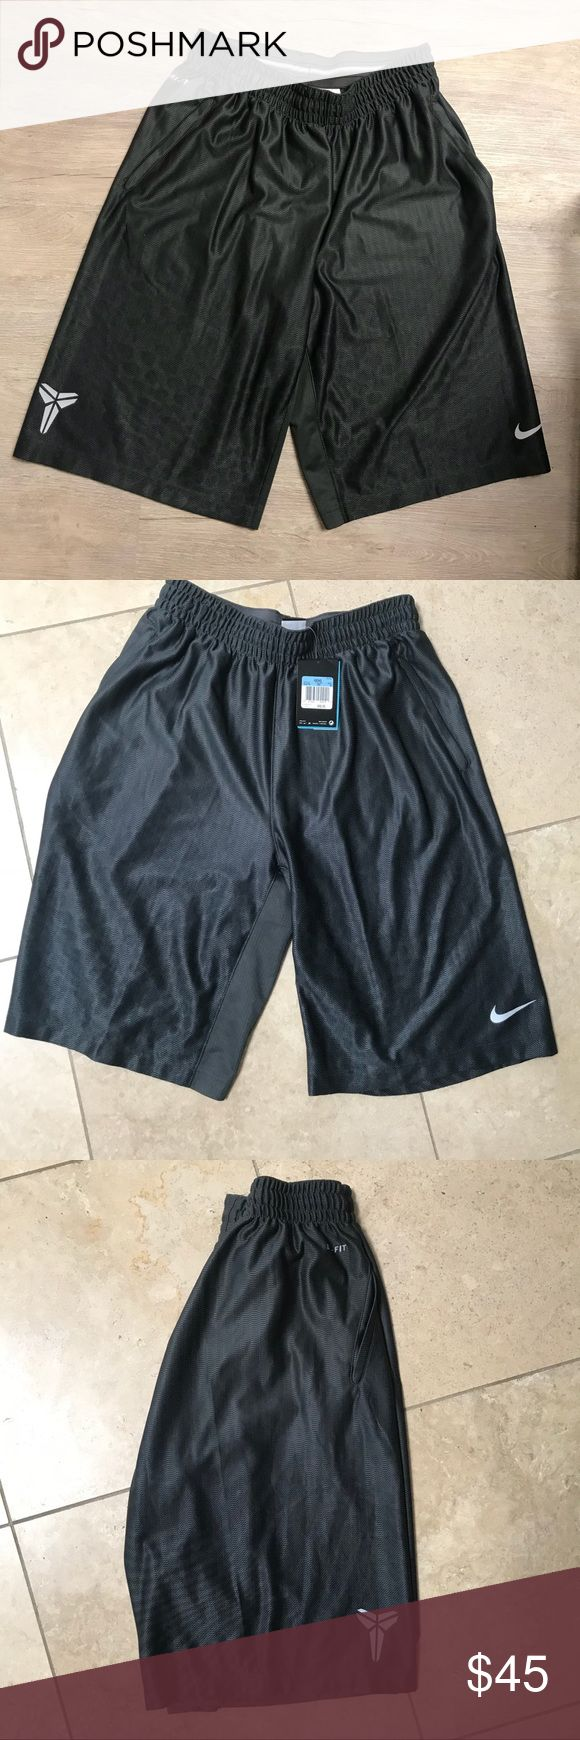 NWT 🏀NIKE KOBE BASKETBALL SHORTS SIZE MEDIUM BRAND NEW NIKE KOBE BASKETBALL SHORTS MENS SIZE MEDIUM 🎁 ships same or next day from my smoke free home.   PRICE is FIRM, offers will be considered through the offer button only. Bundle items to save. ✨   Checkout all my NIKE listings. ⚡️100% authentic Nike product purchased directly from NIKE 🎁 Nike Shorts Athletic